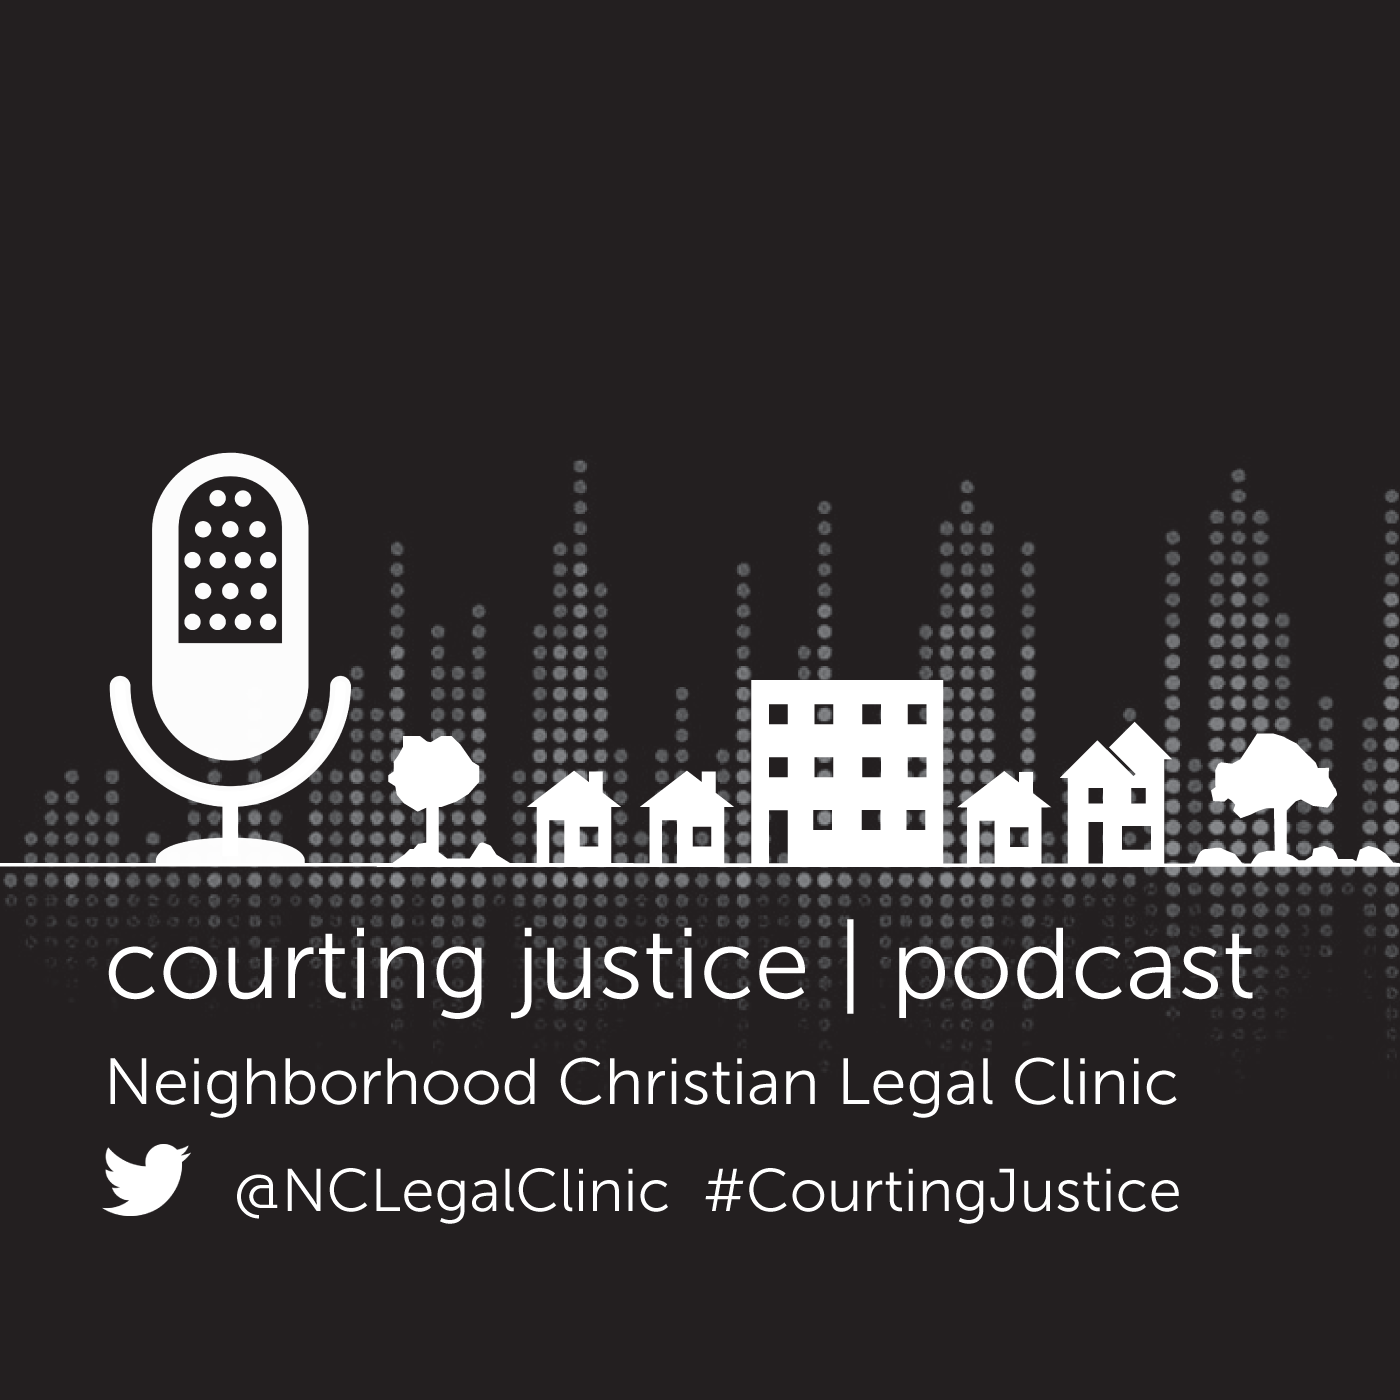 CourtingJustice square 3-10-16.png